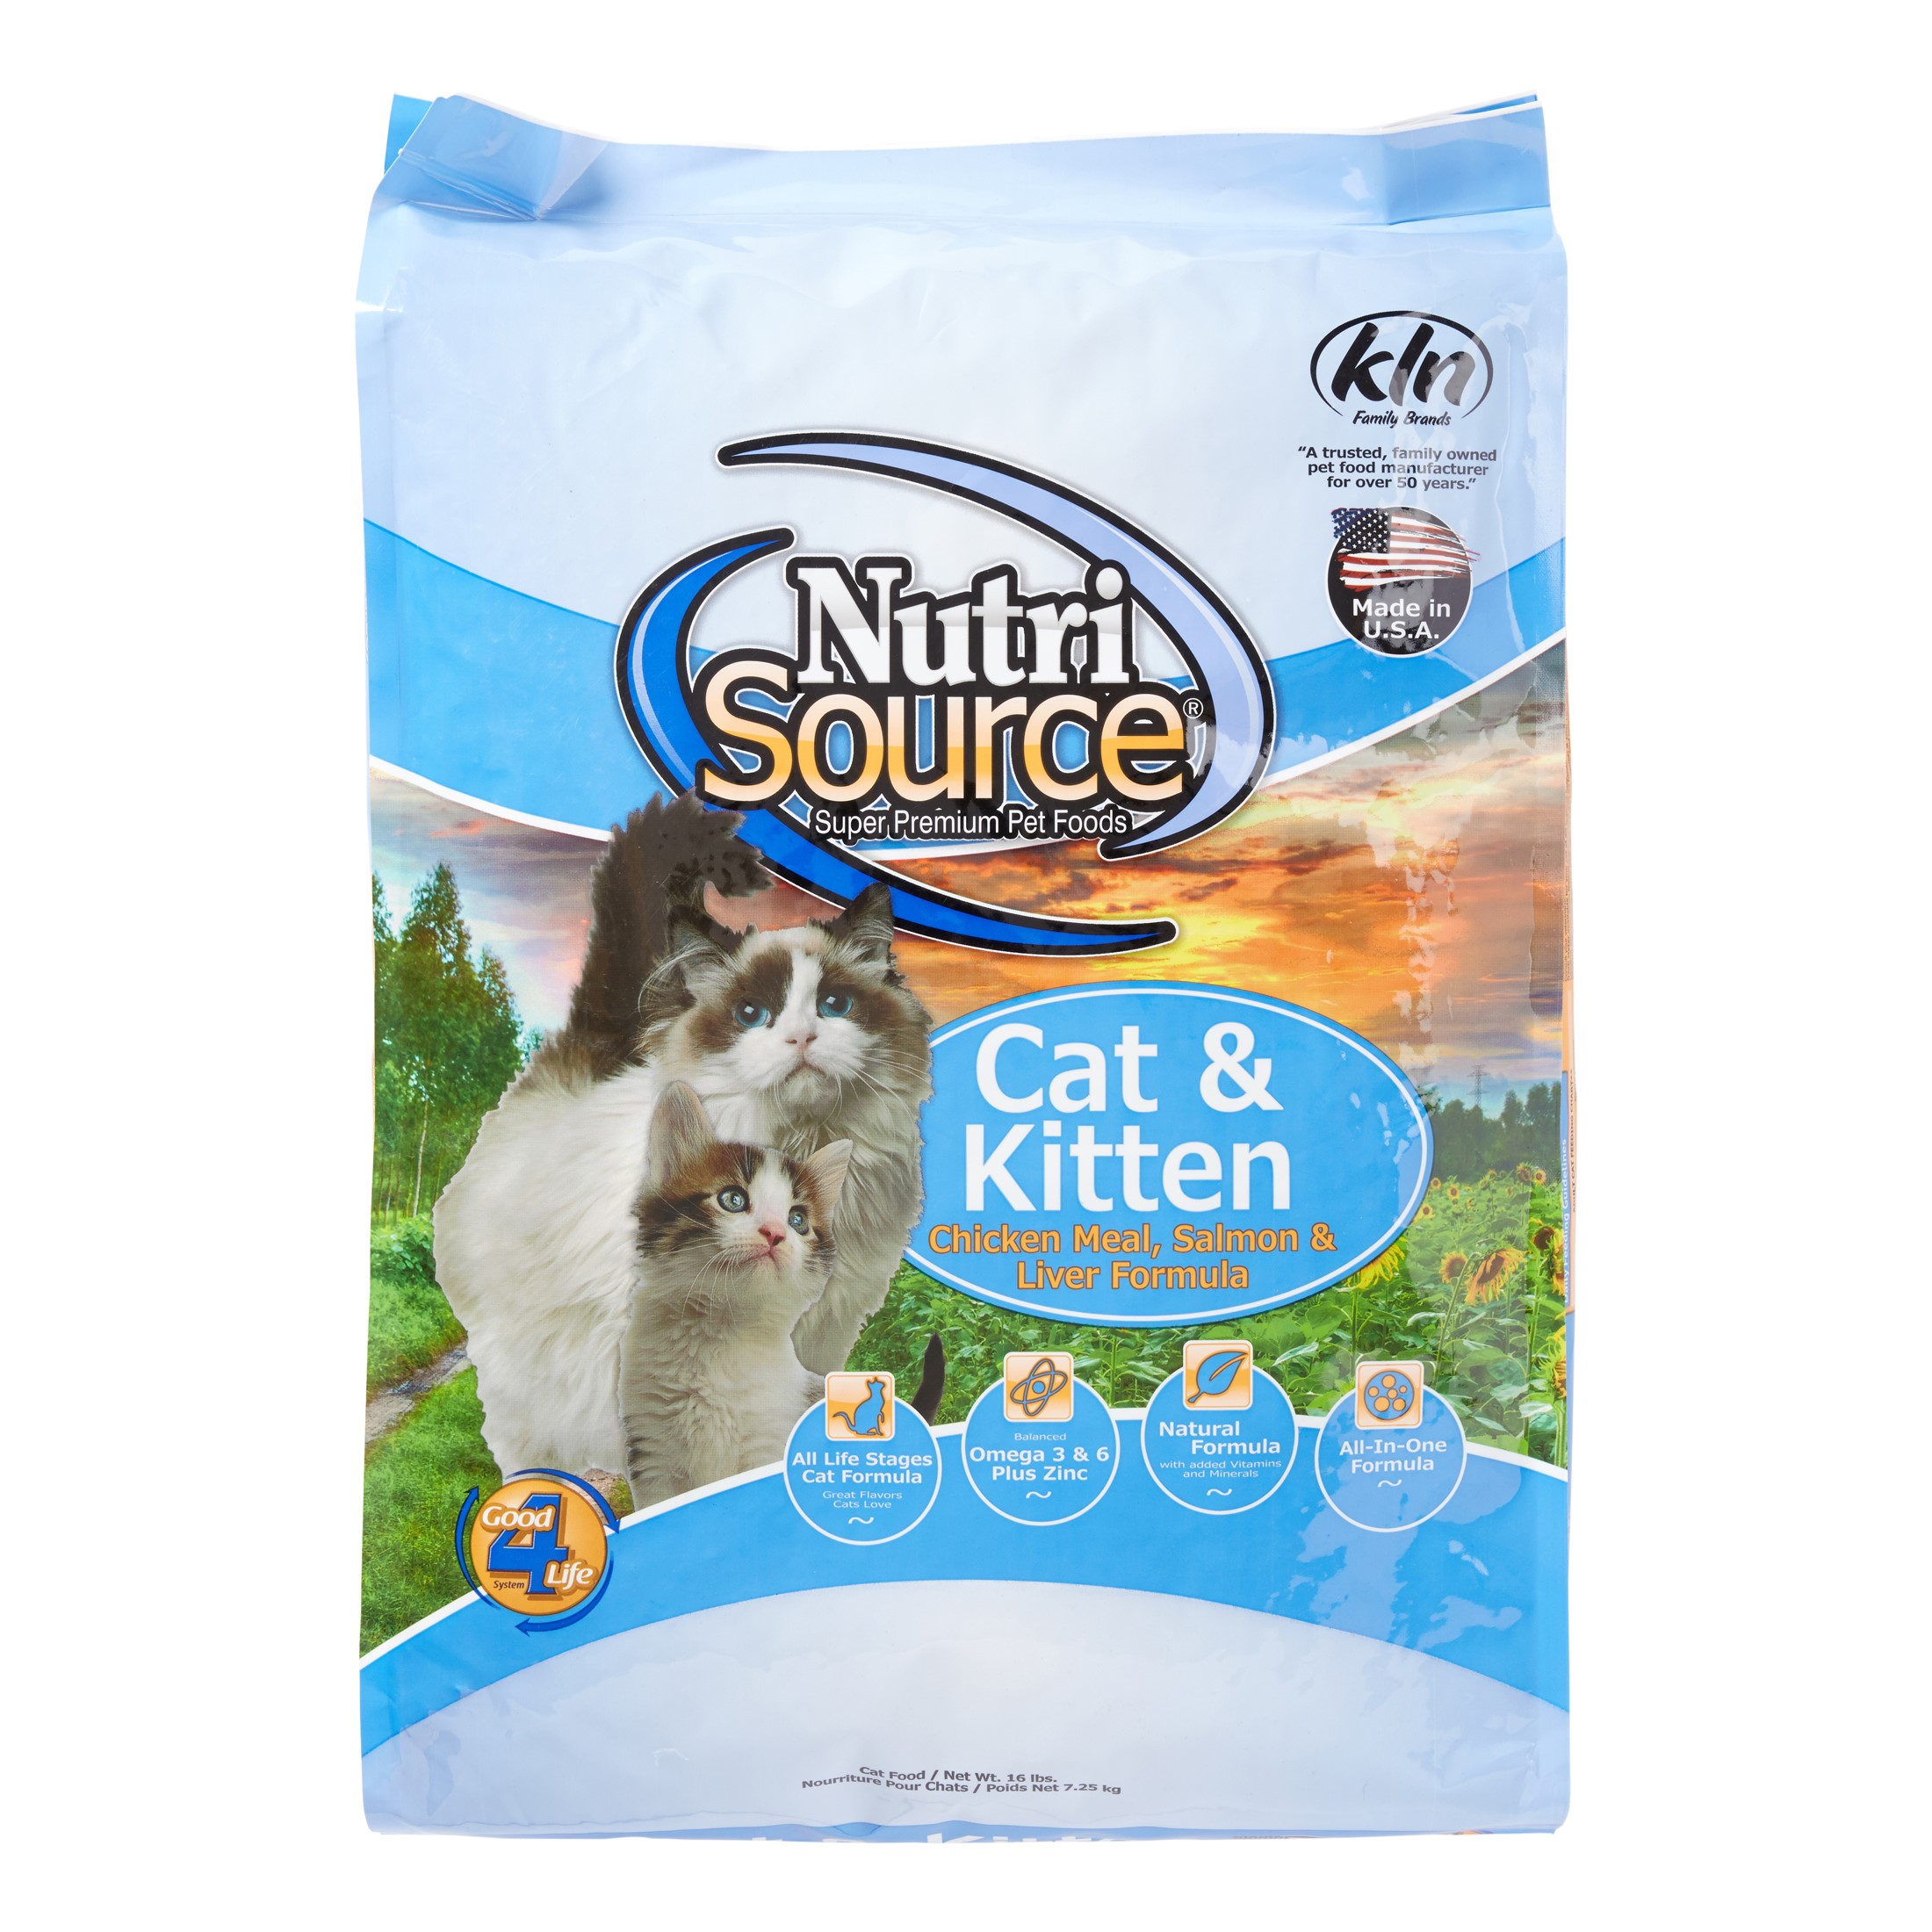 NutriSource Cat & Kitten Chicken Meal, Salmon & Liver Dry Cat Food, 16 lb